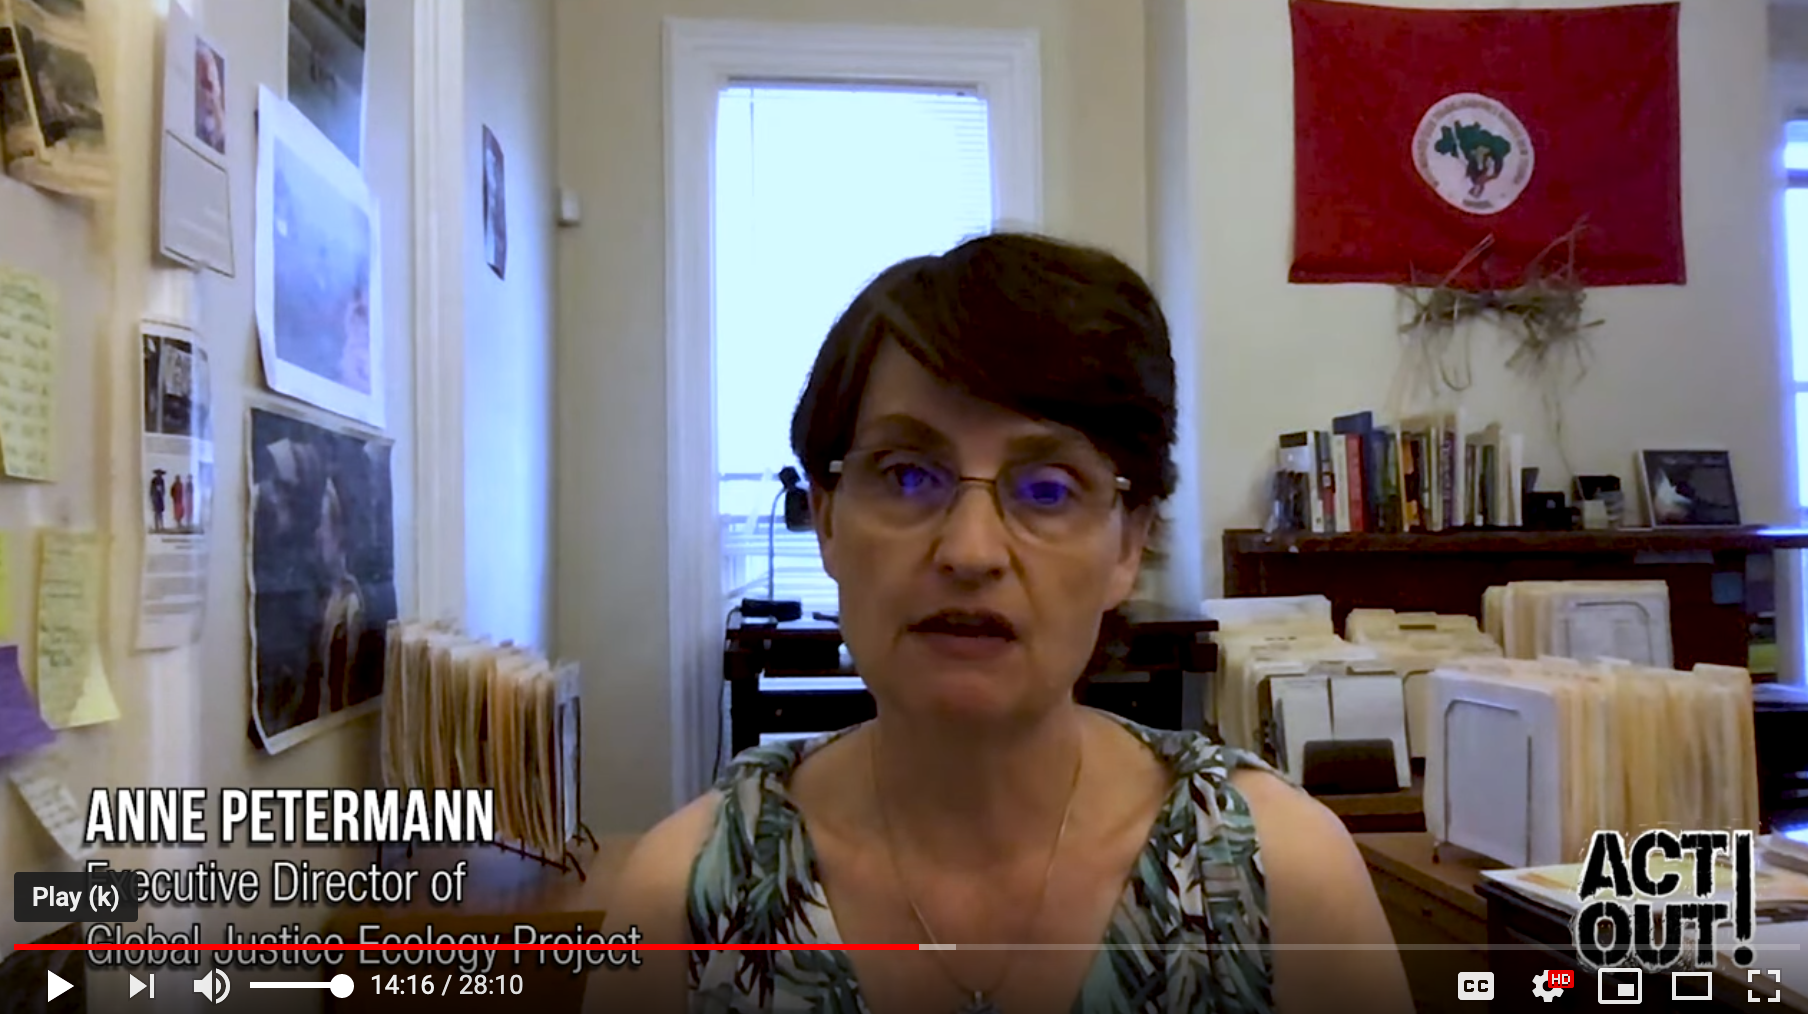 Interview with Exec Dir. Anne Petermann on Climate Change, Deforestation and the Need to Rise Up